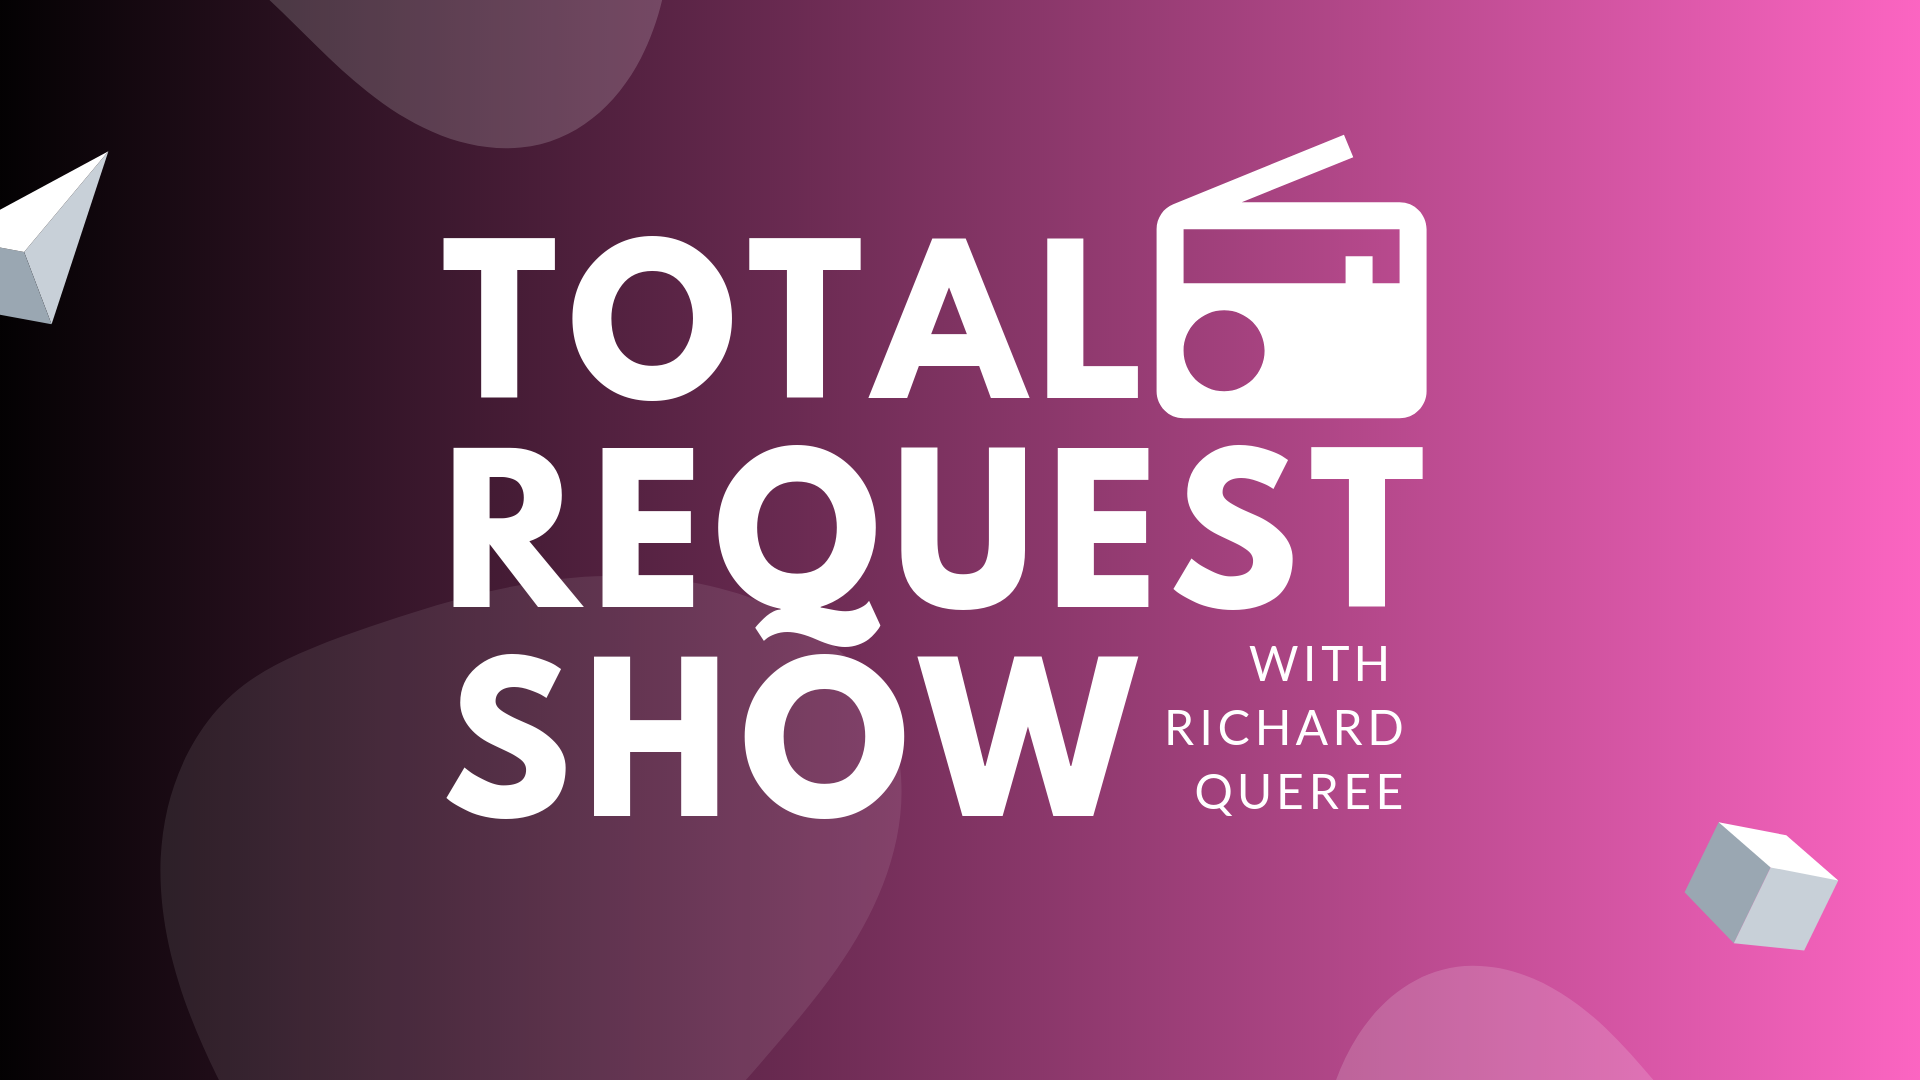 The Best of the Total Request Show